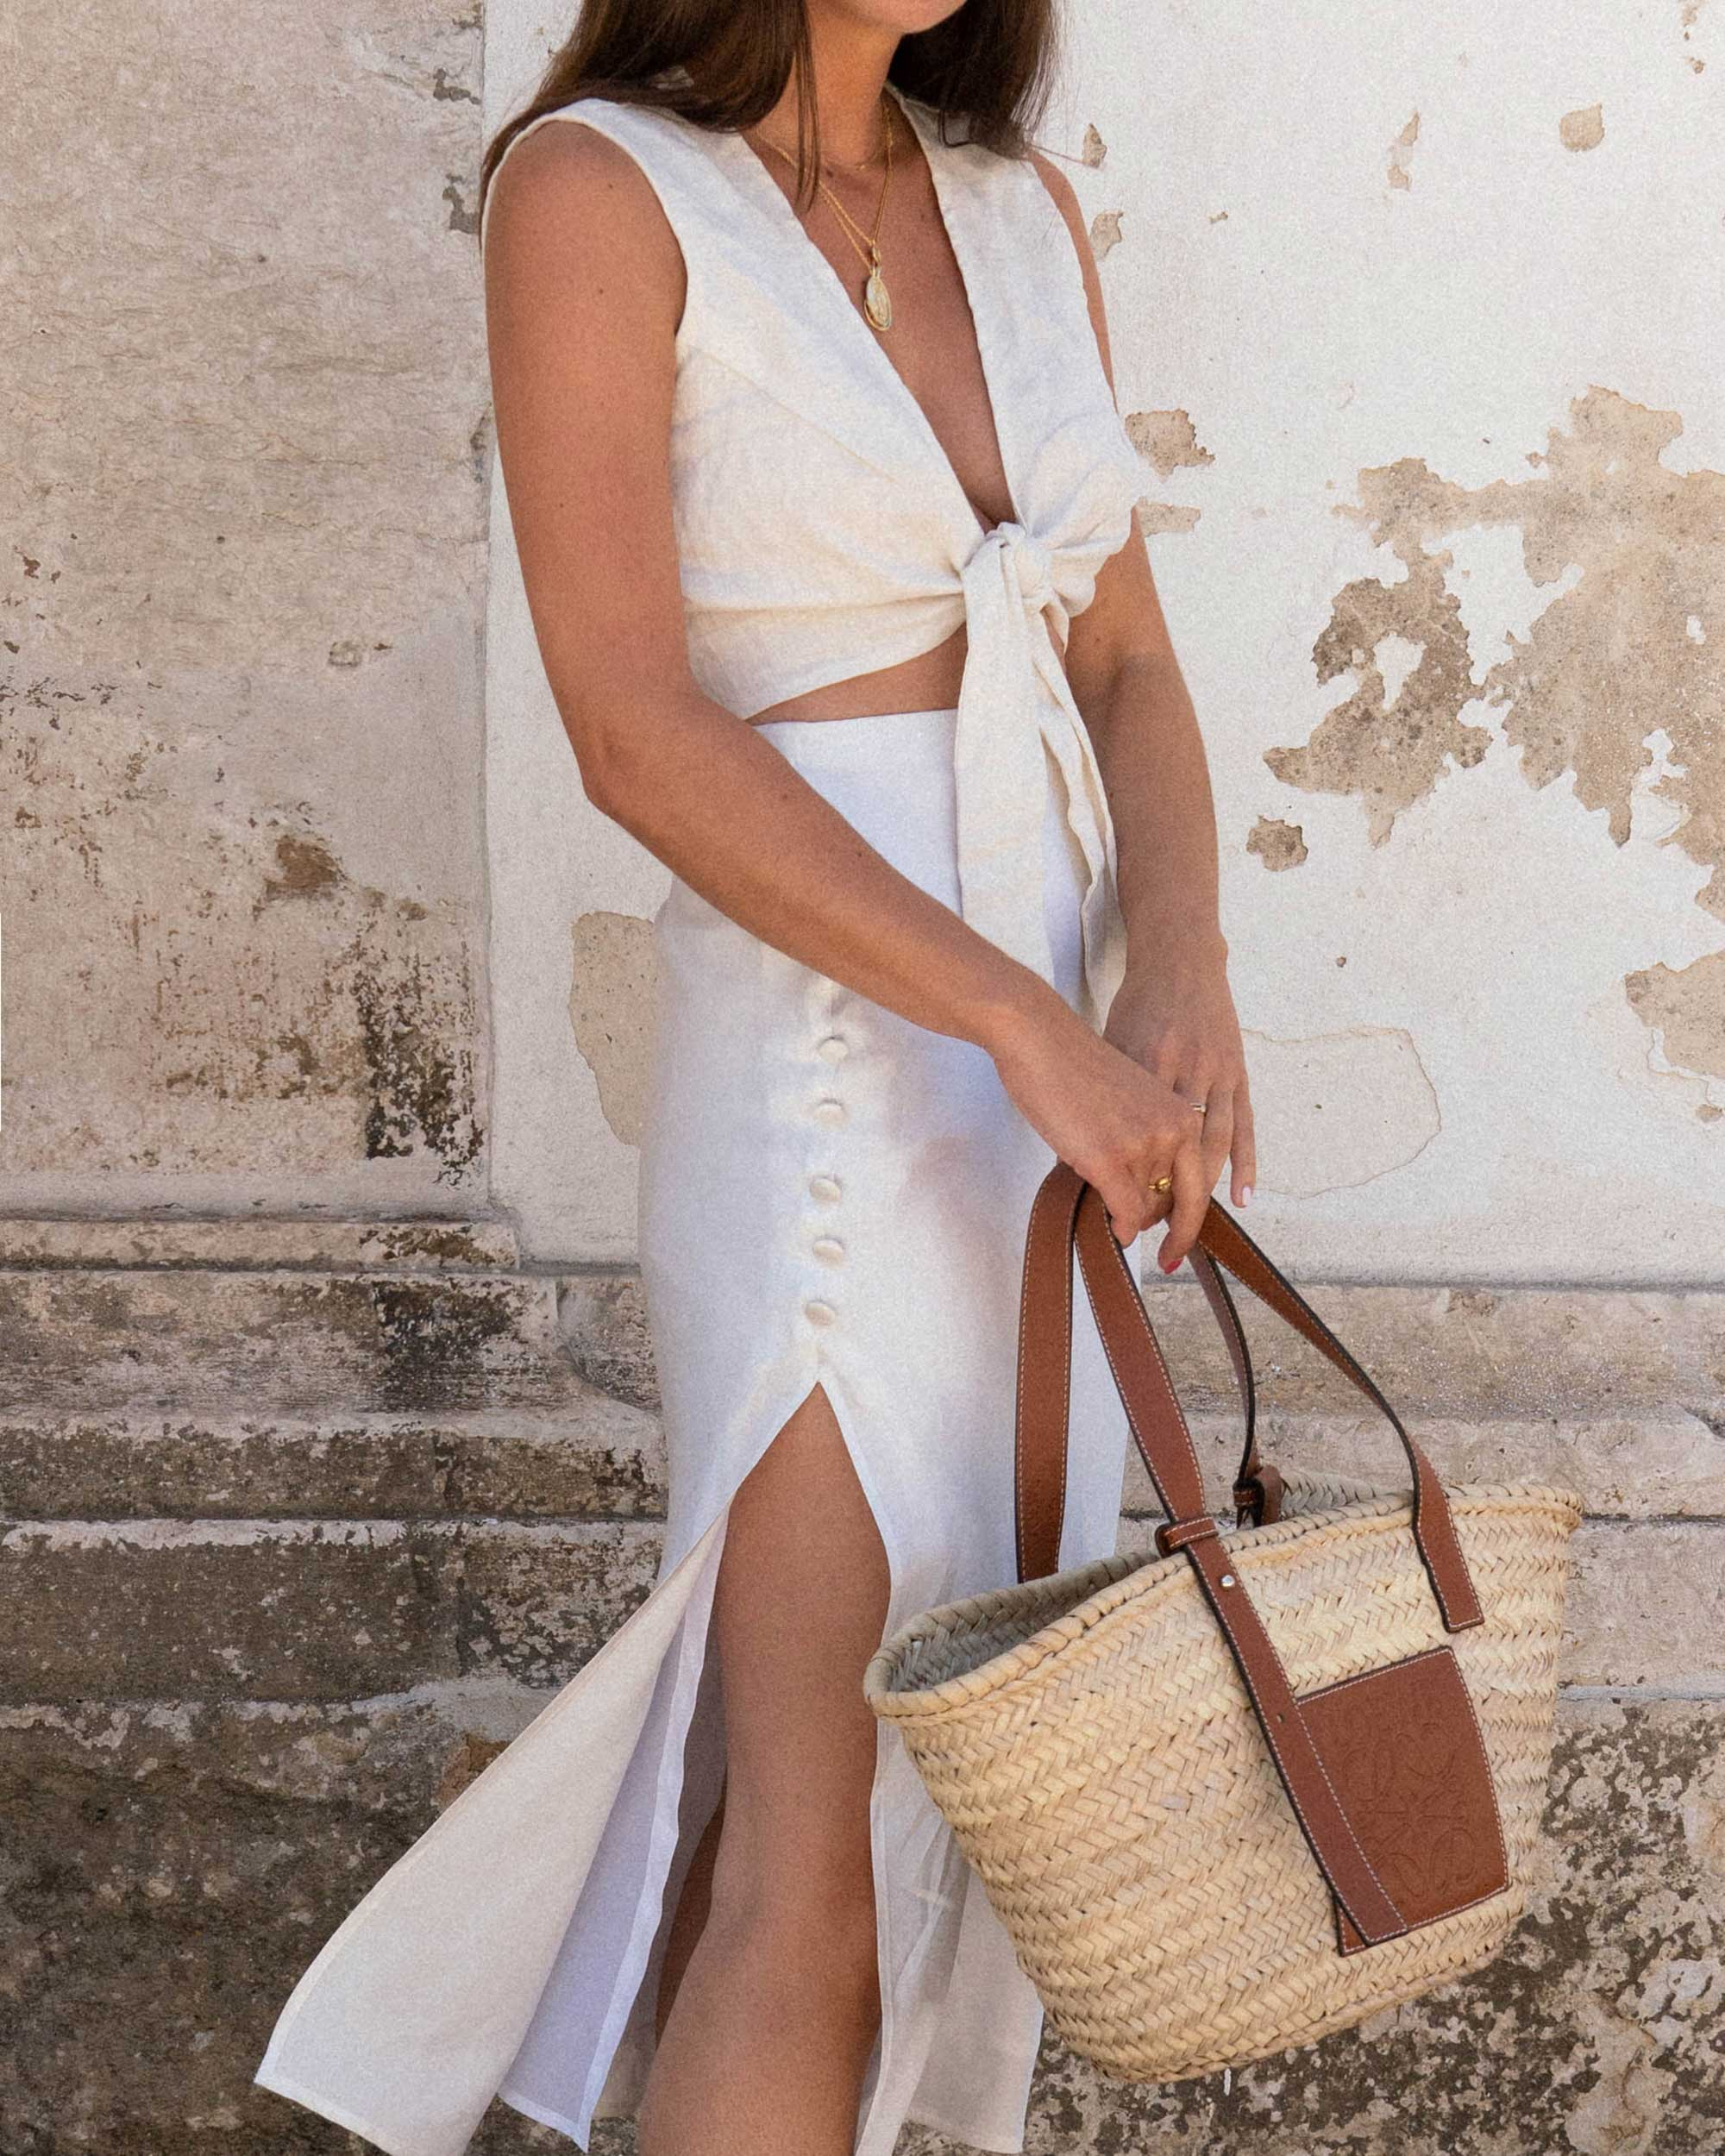 Sarah Butler of Sarah Styles Seattle wears Faithfull the Brand Marcie Plunging Cropped Tie Top and Loewe Raffia Basket Tote Bag in Lisbon, Portugal | @sarahchristine - 4.jpg